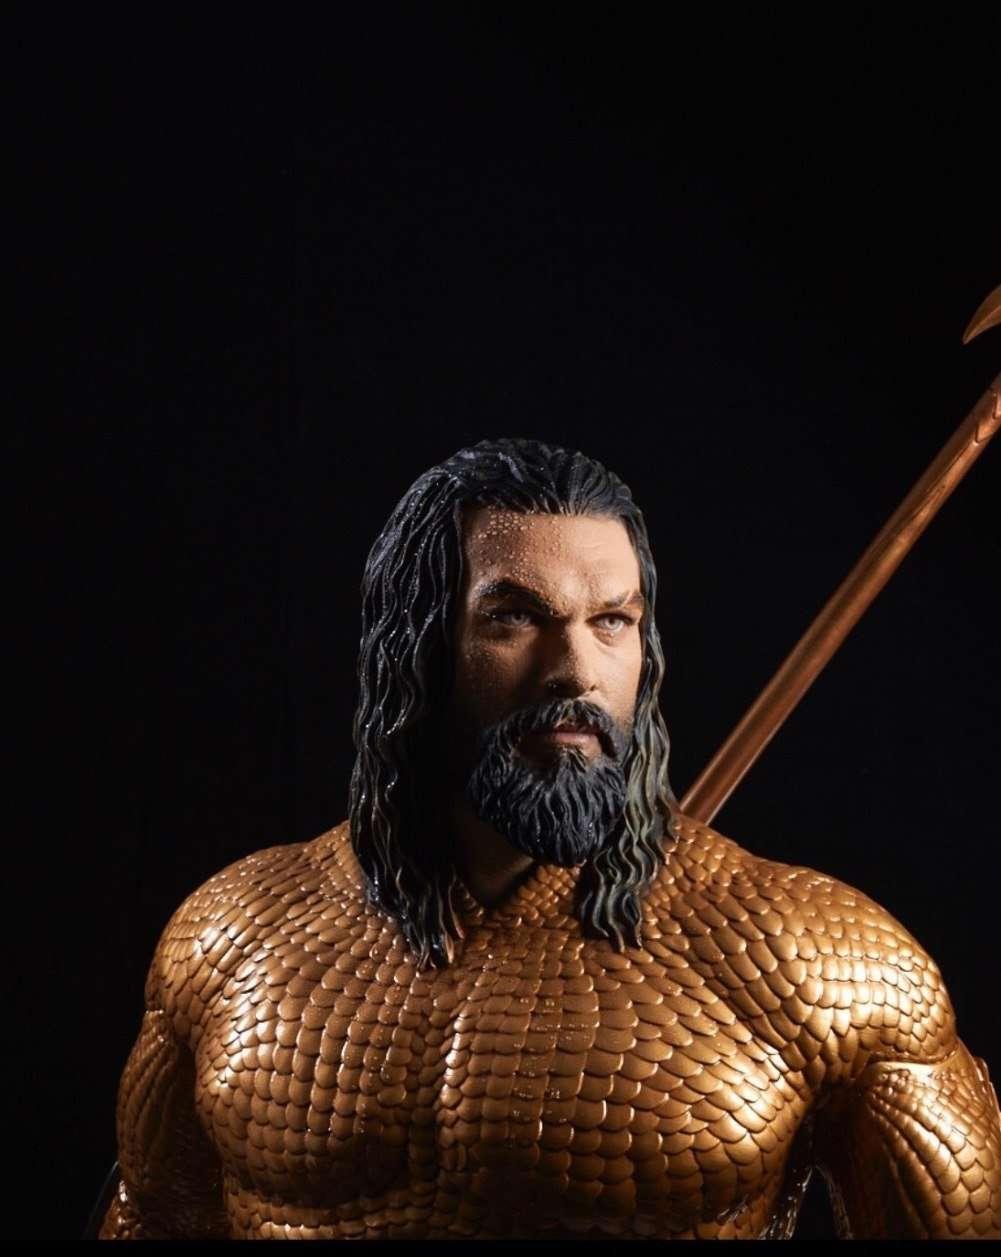 Aquaman Life Size Statue 2018 Movie Prop (New Armor) - LM Treasures